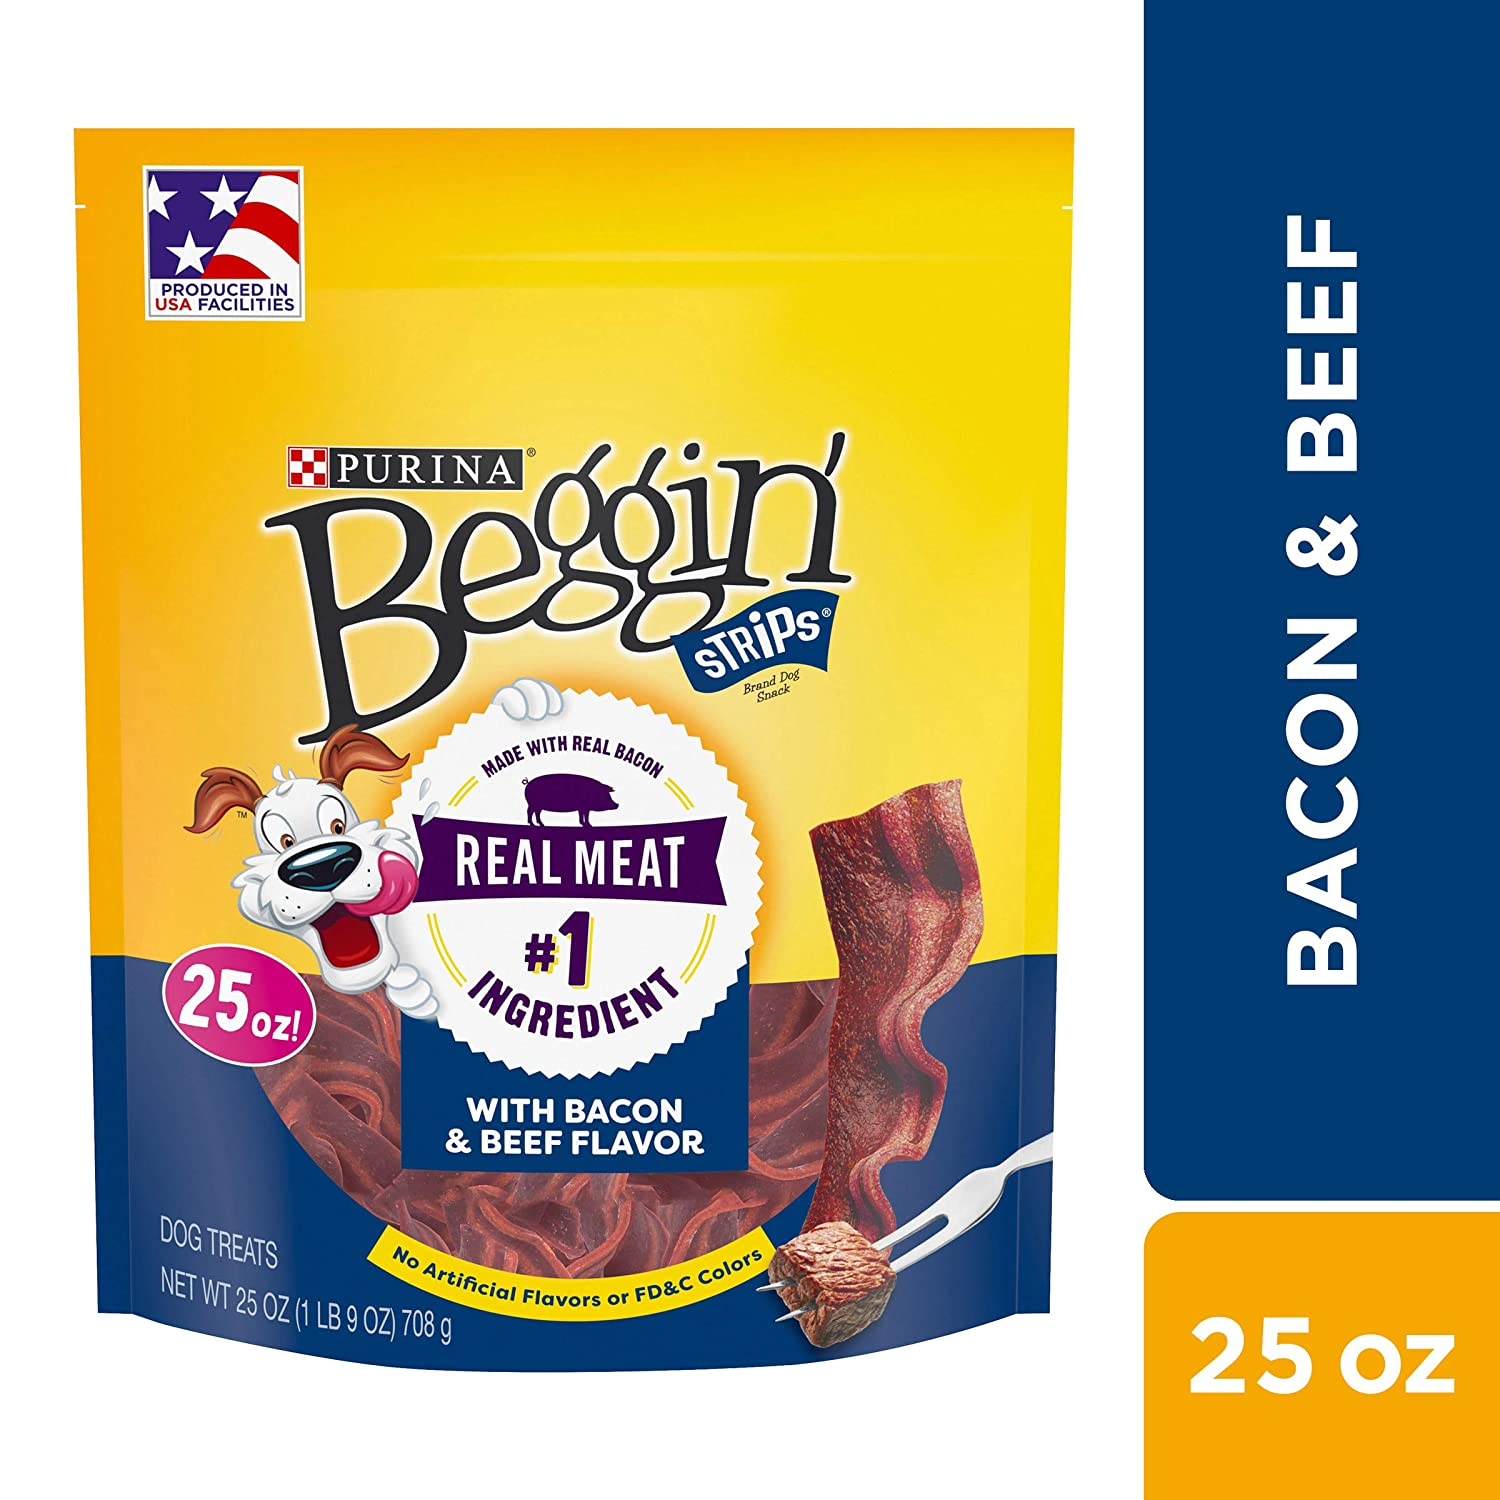 Purina Beggin Strips Made in USA Facilities Dog Training Treats, Bacon Beef Flavors – 4 25 oz. Pouches